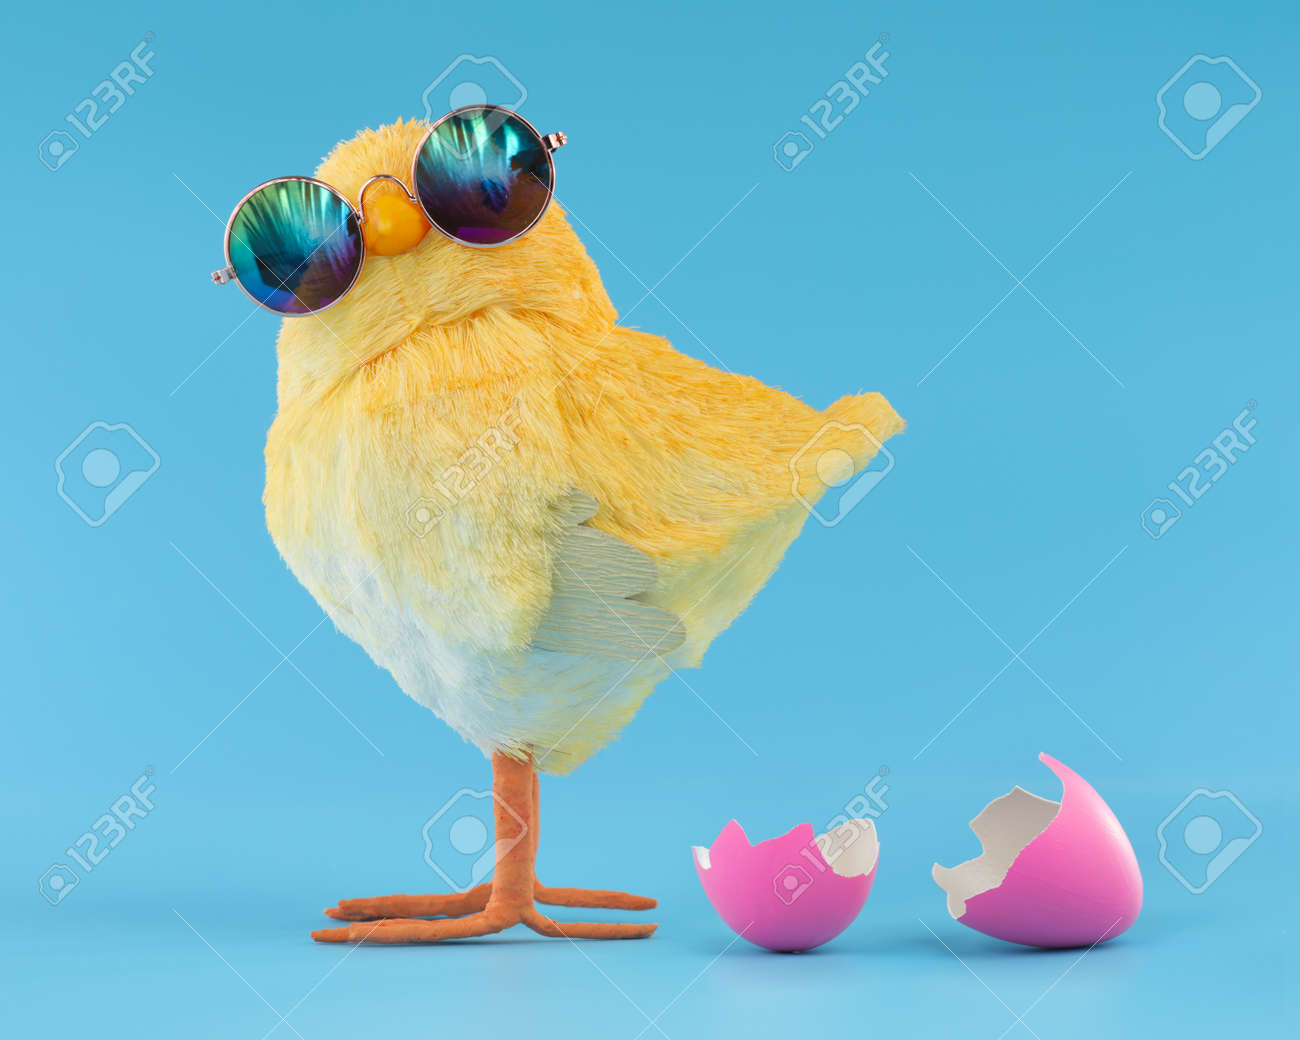 Easter decoration of a yellow chick wearing silly sunglasses with a pink cracked, hatched Easter egg. - 166138554